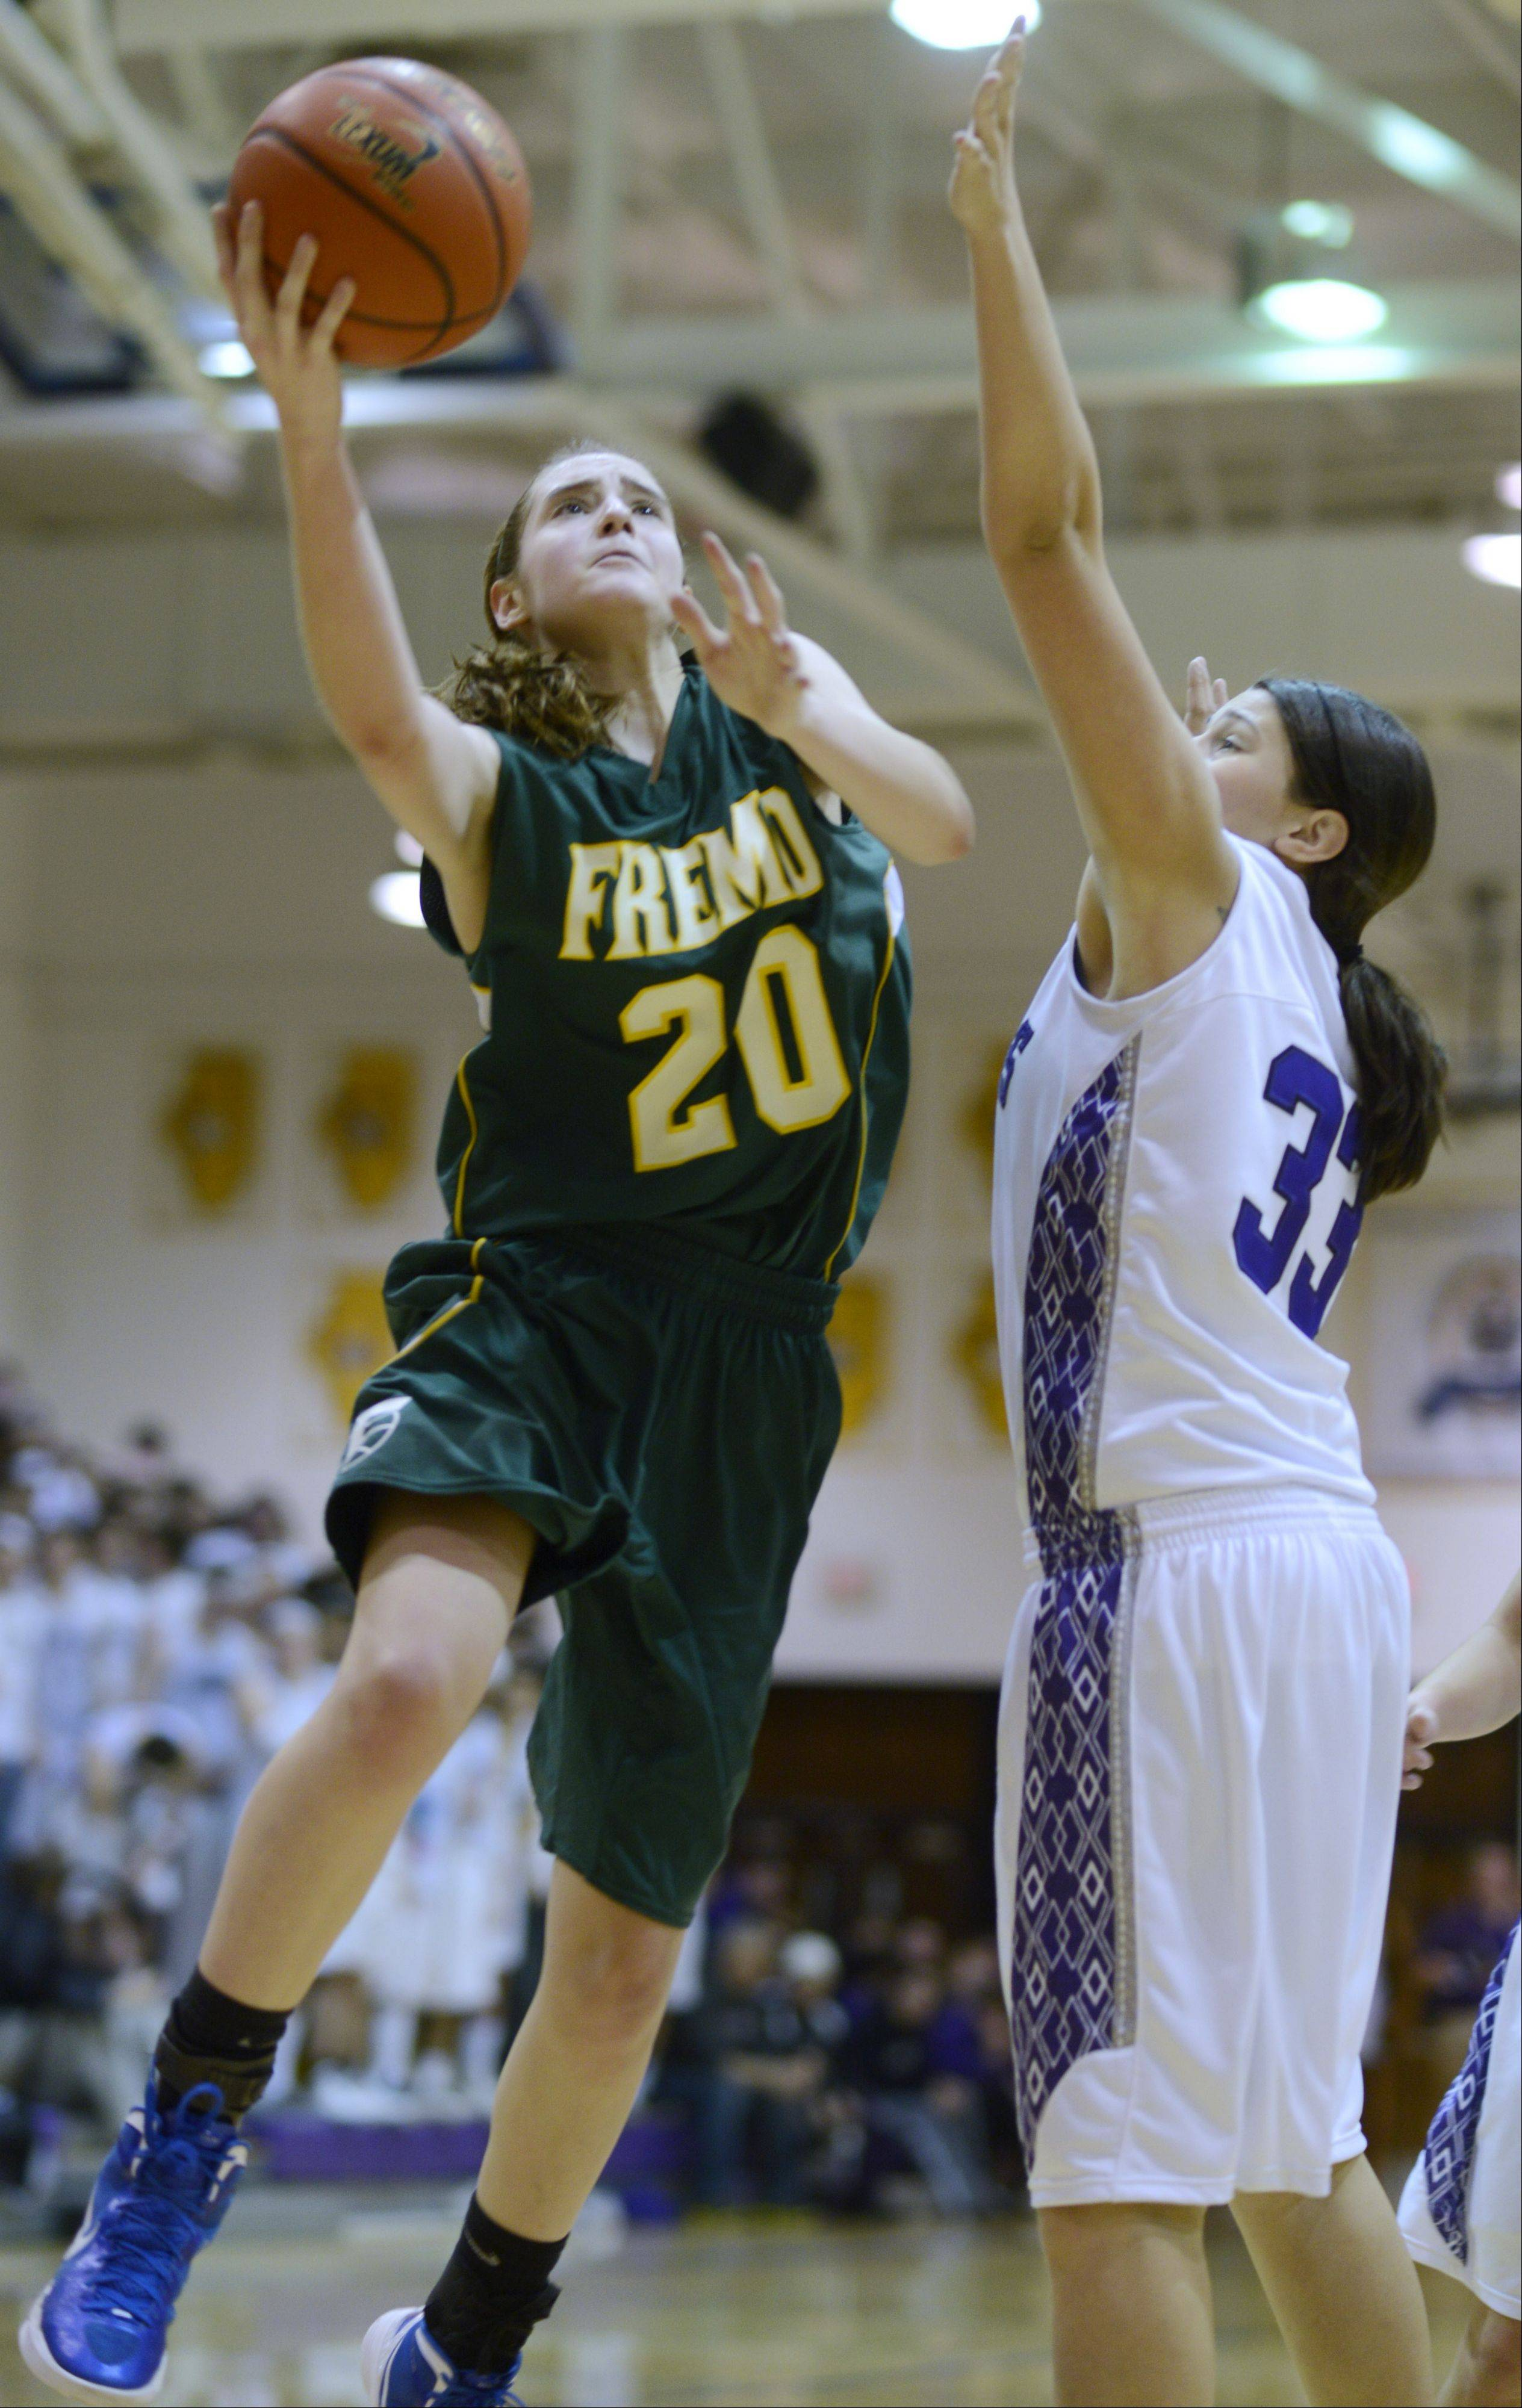 Fremd's Haley Gorecki drives for a layup against Rolling Meadows defender Ashley Montanez during the Mid-Suburban league championship game Wednesday.